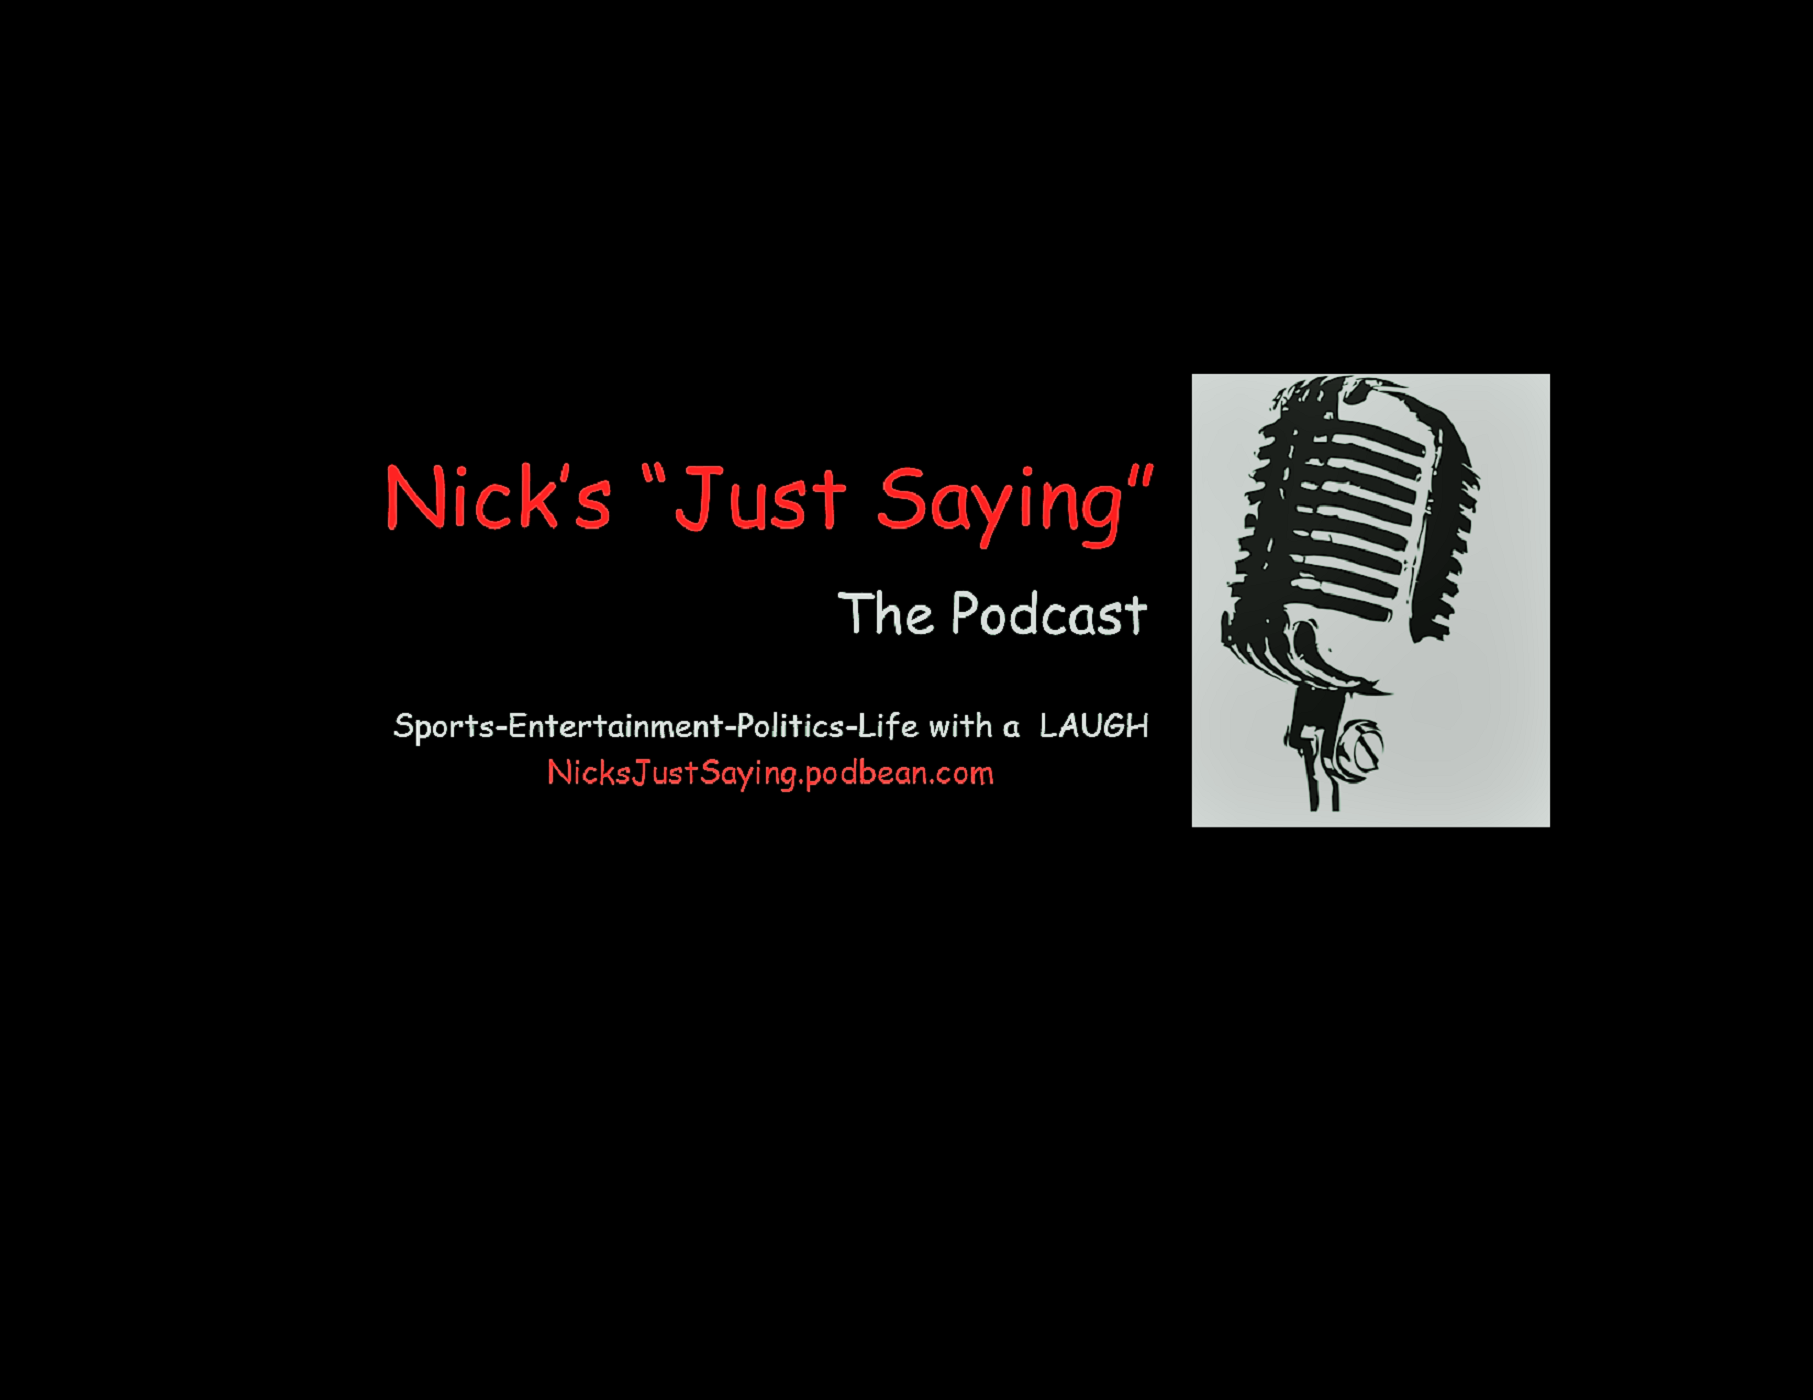 Nick's Just Saying's The Podcast